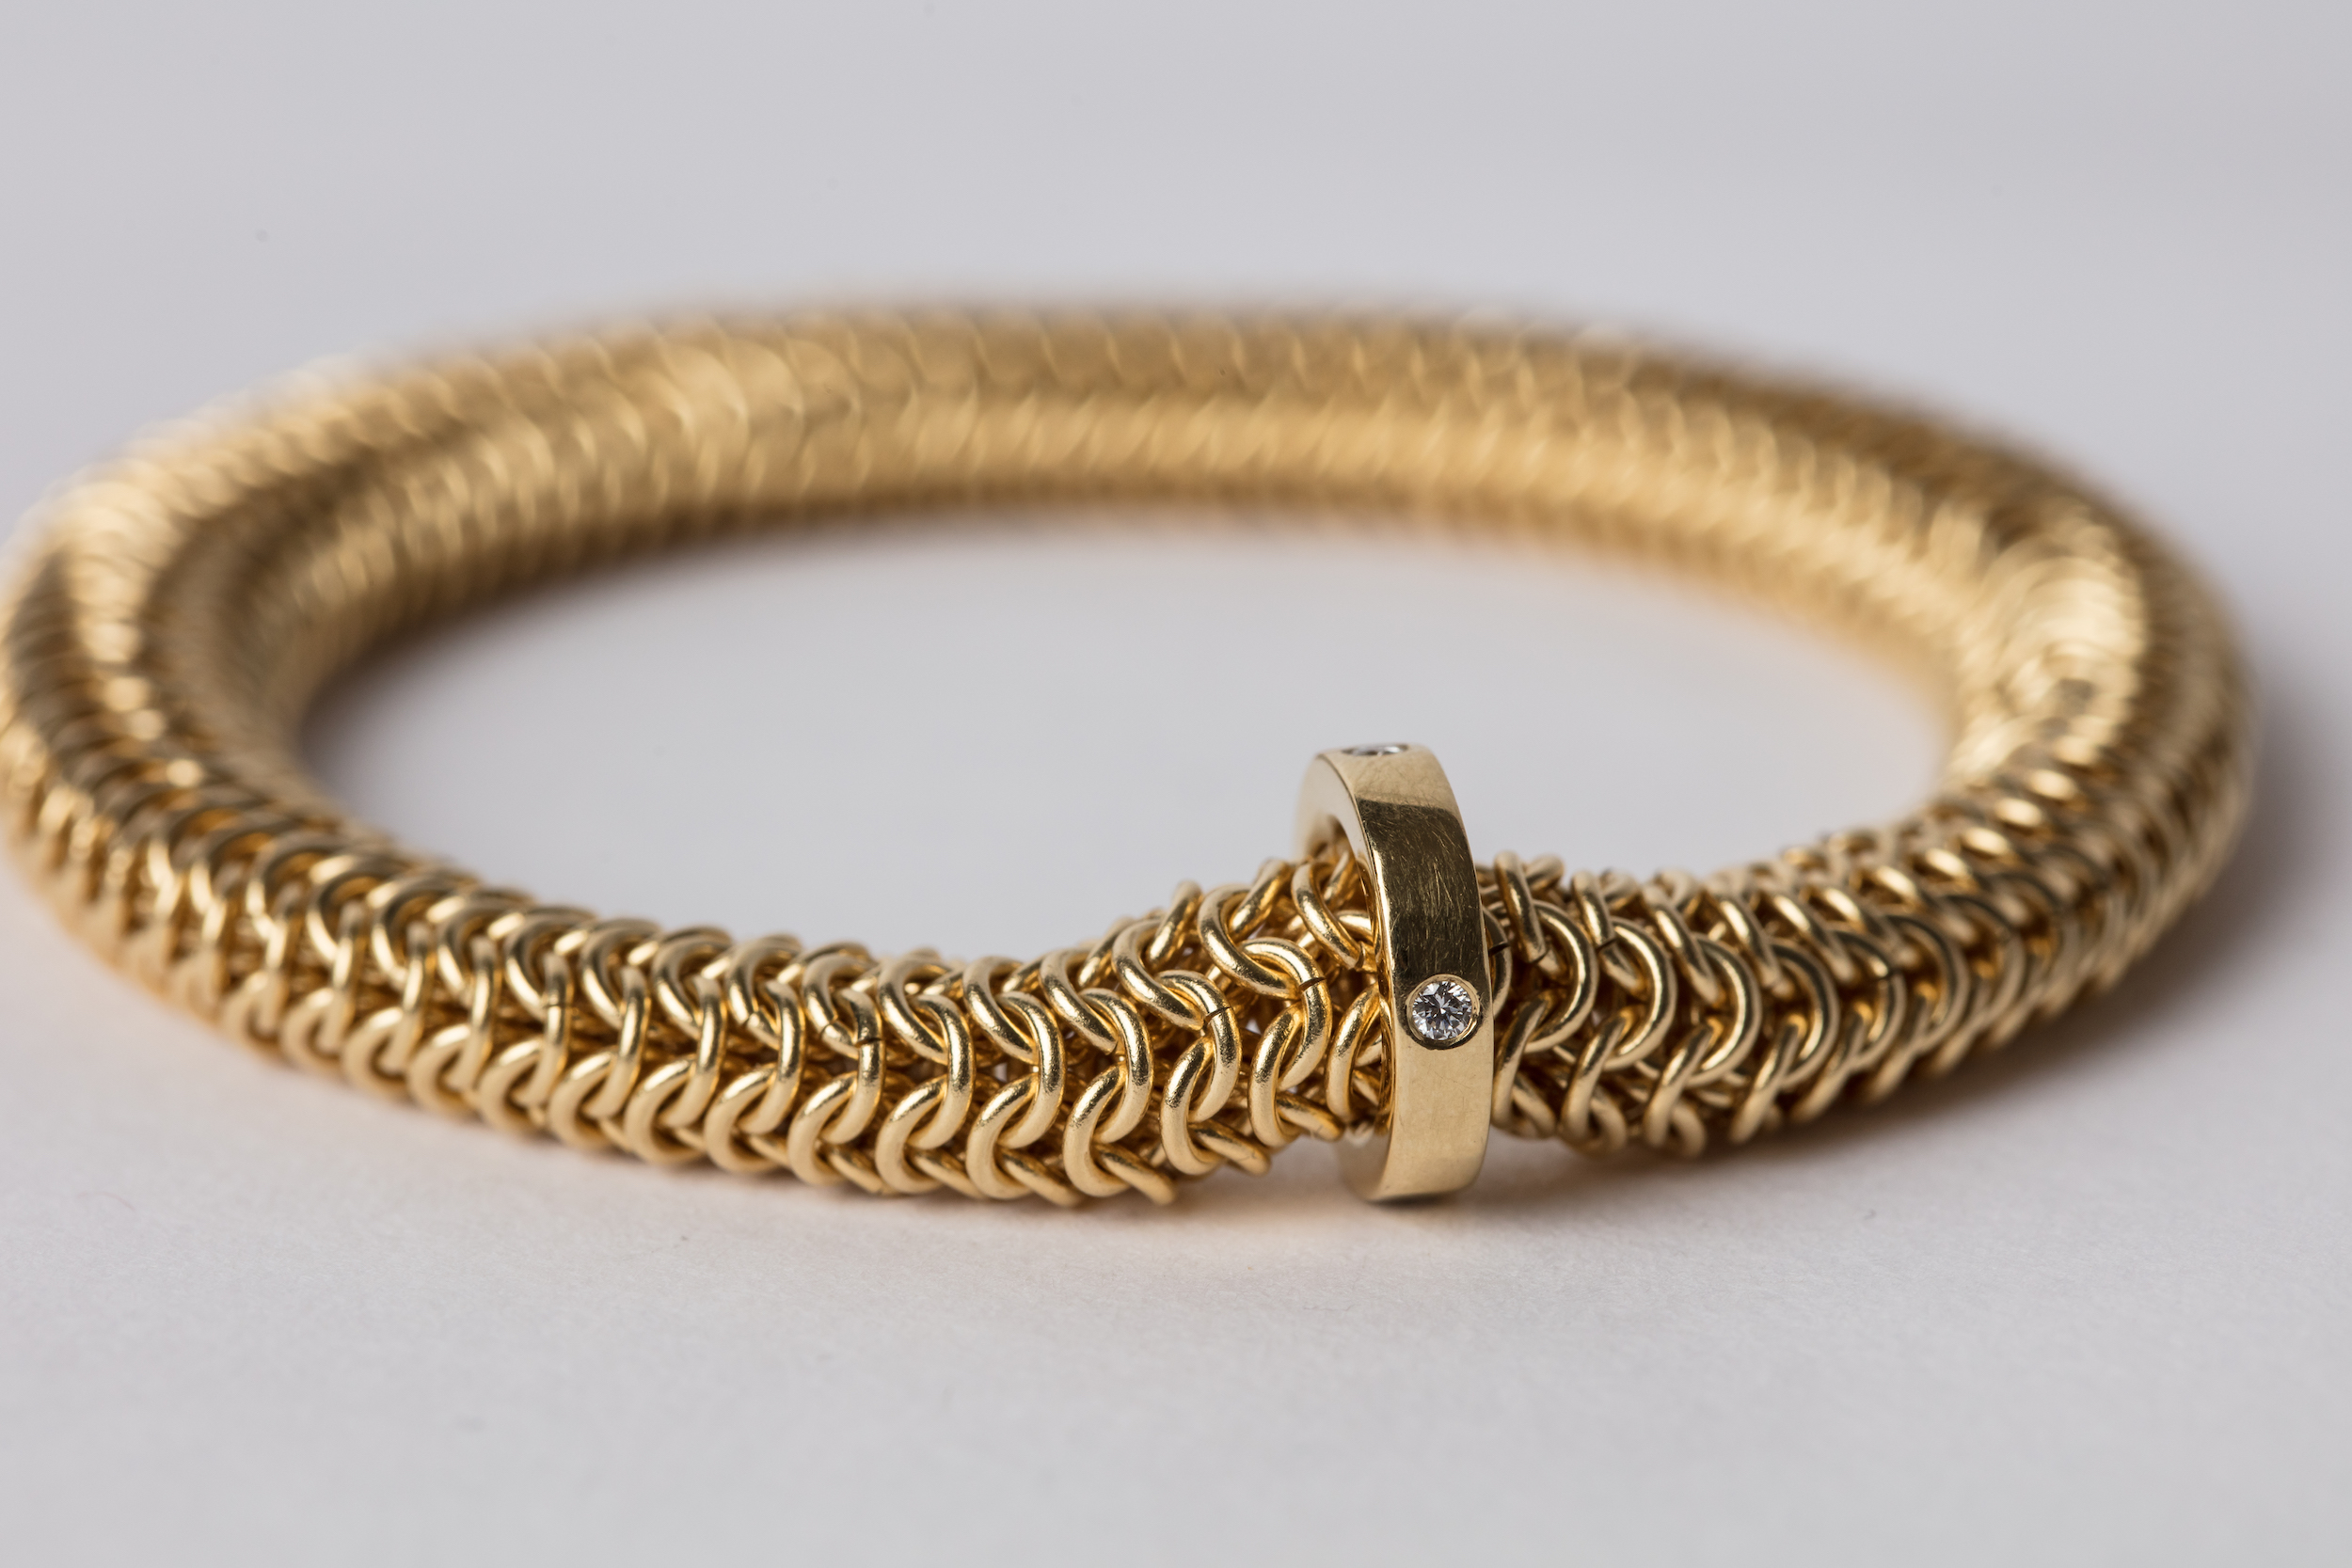 18ct Gold Tube Bracelet with 18ct Gold and Diamond Runner